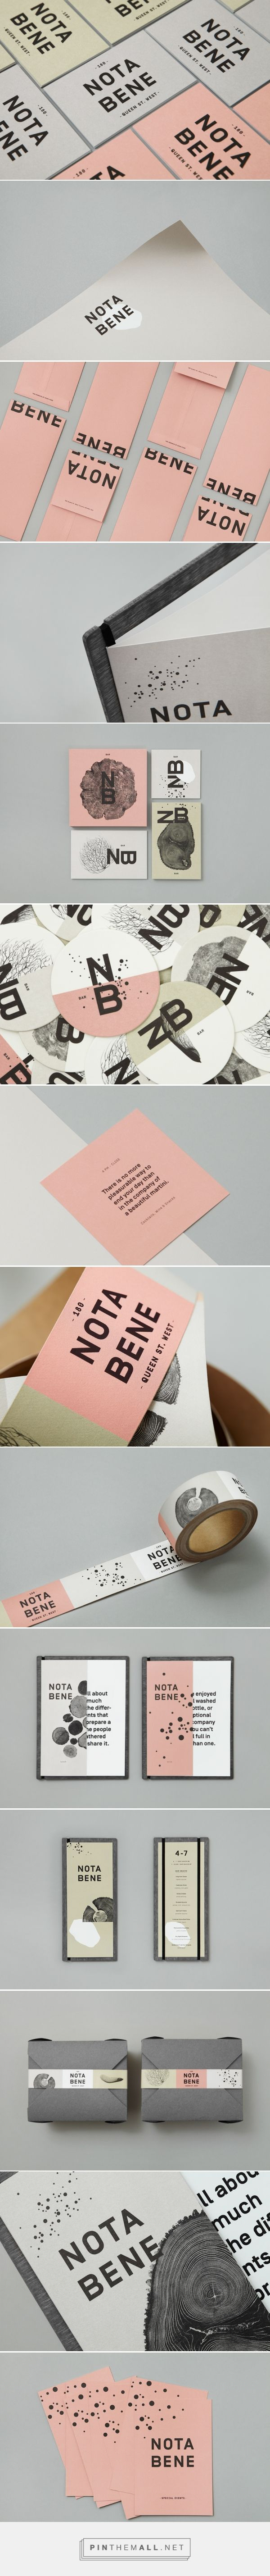 Nota Bene by Blok Design #graphicdesign #brandidentity #brandinginspiration